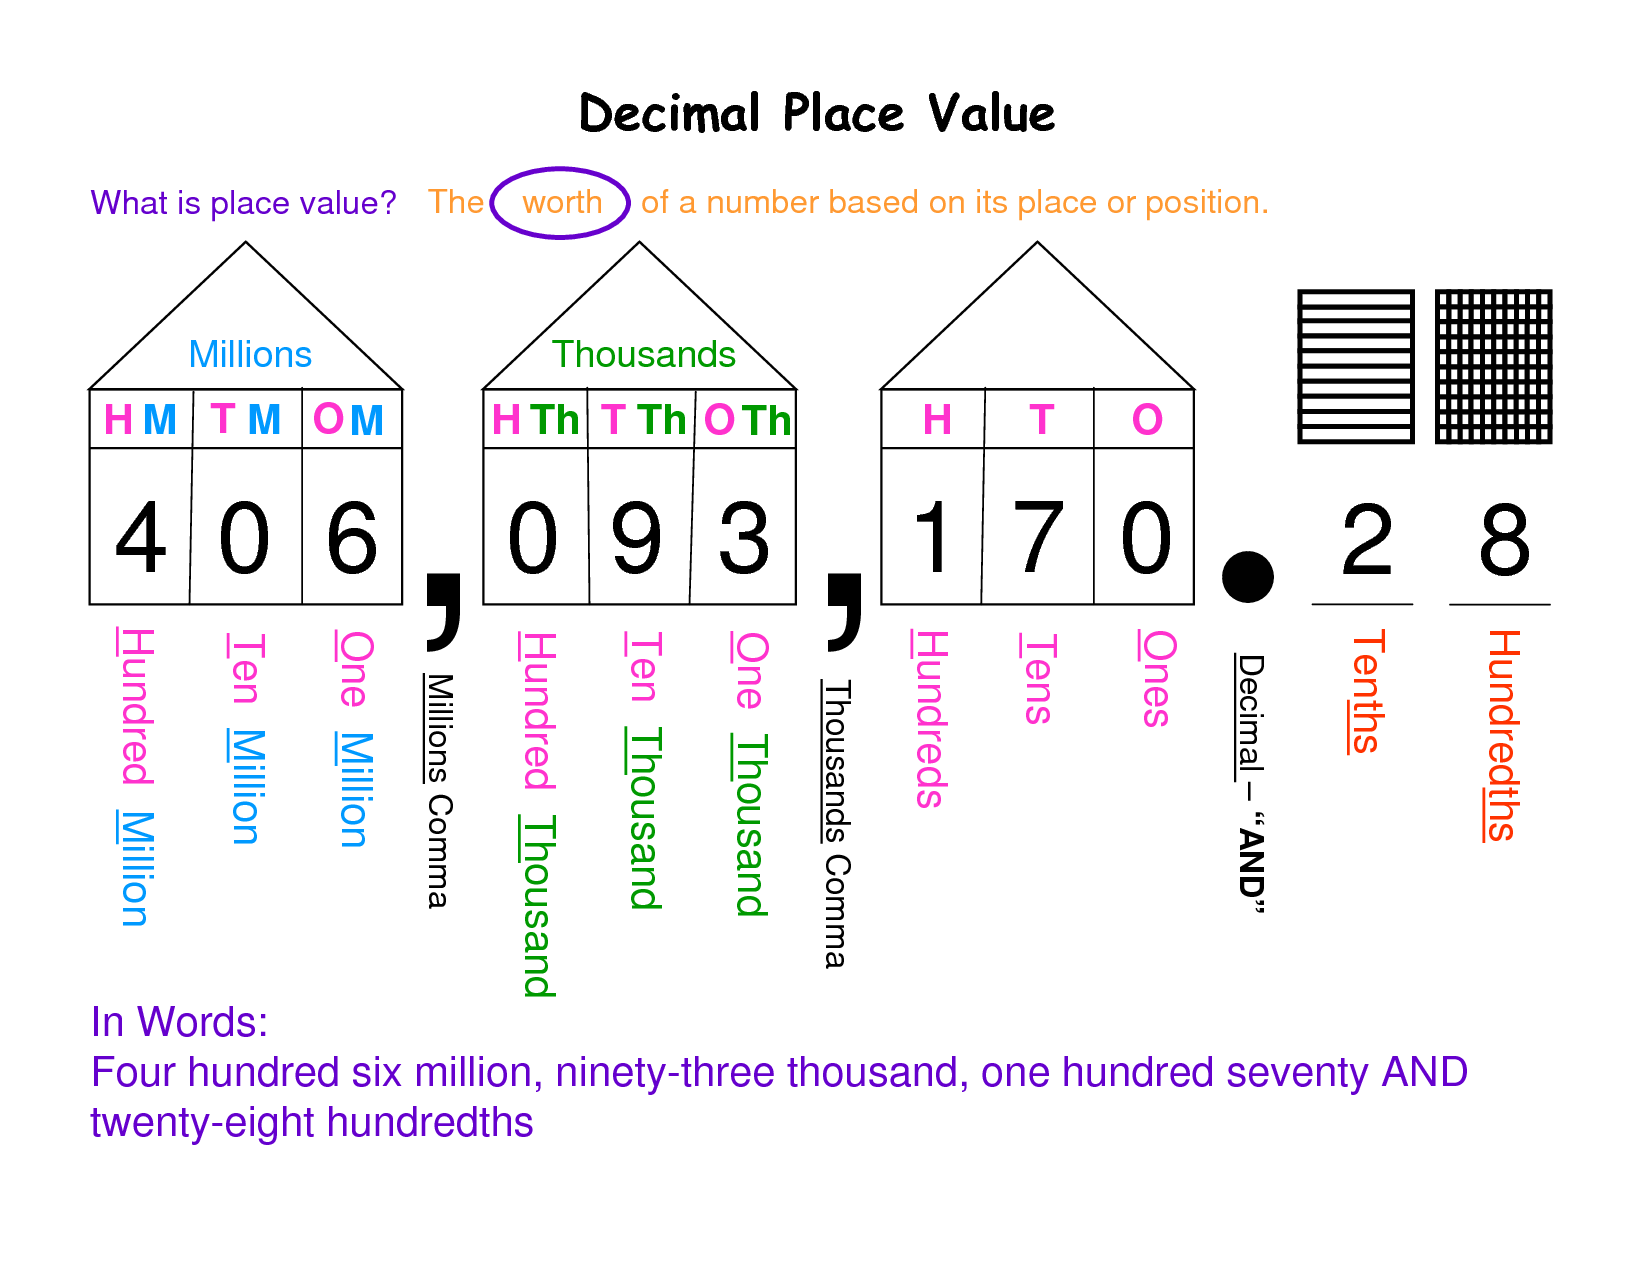 Full Size Decimal Place Value Chart Image Result For Imgcstoccdn Thumb